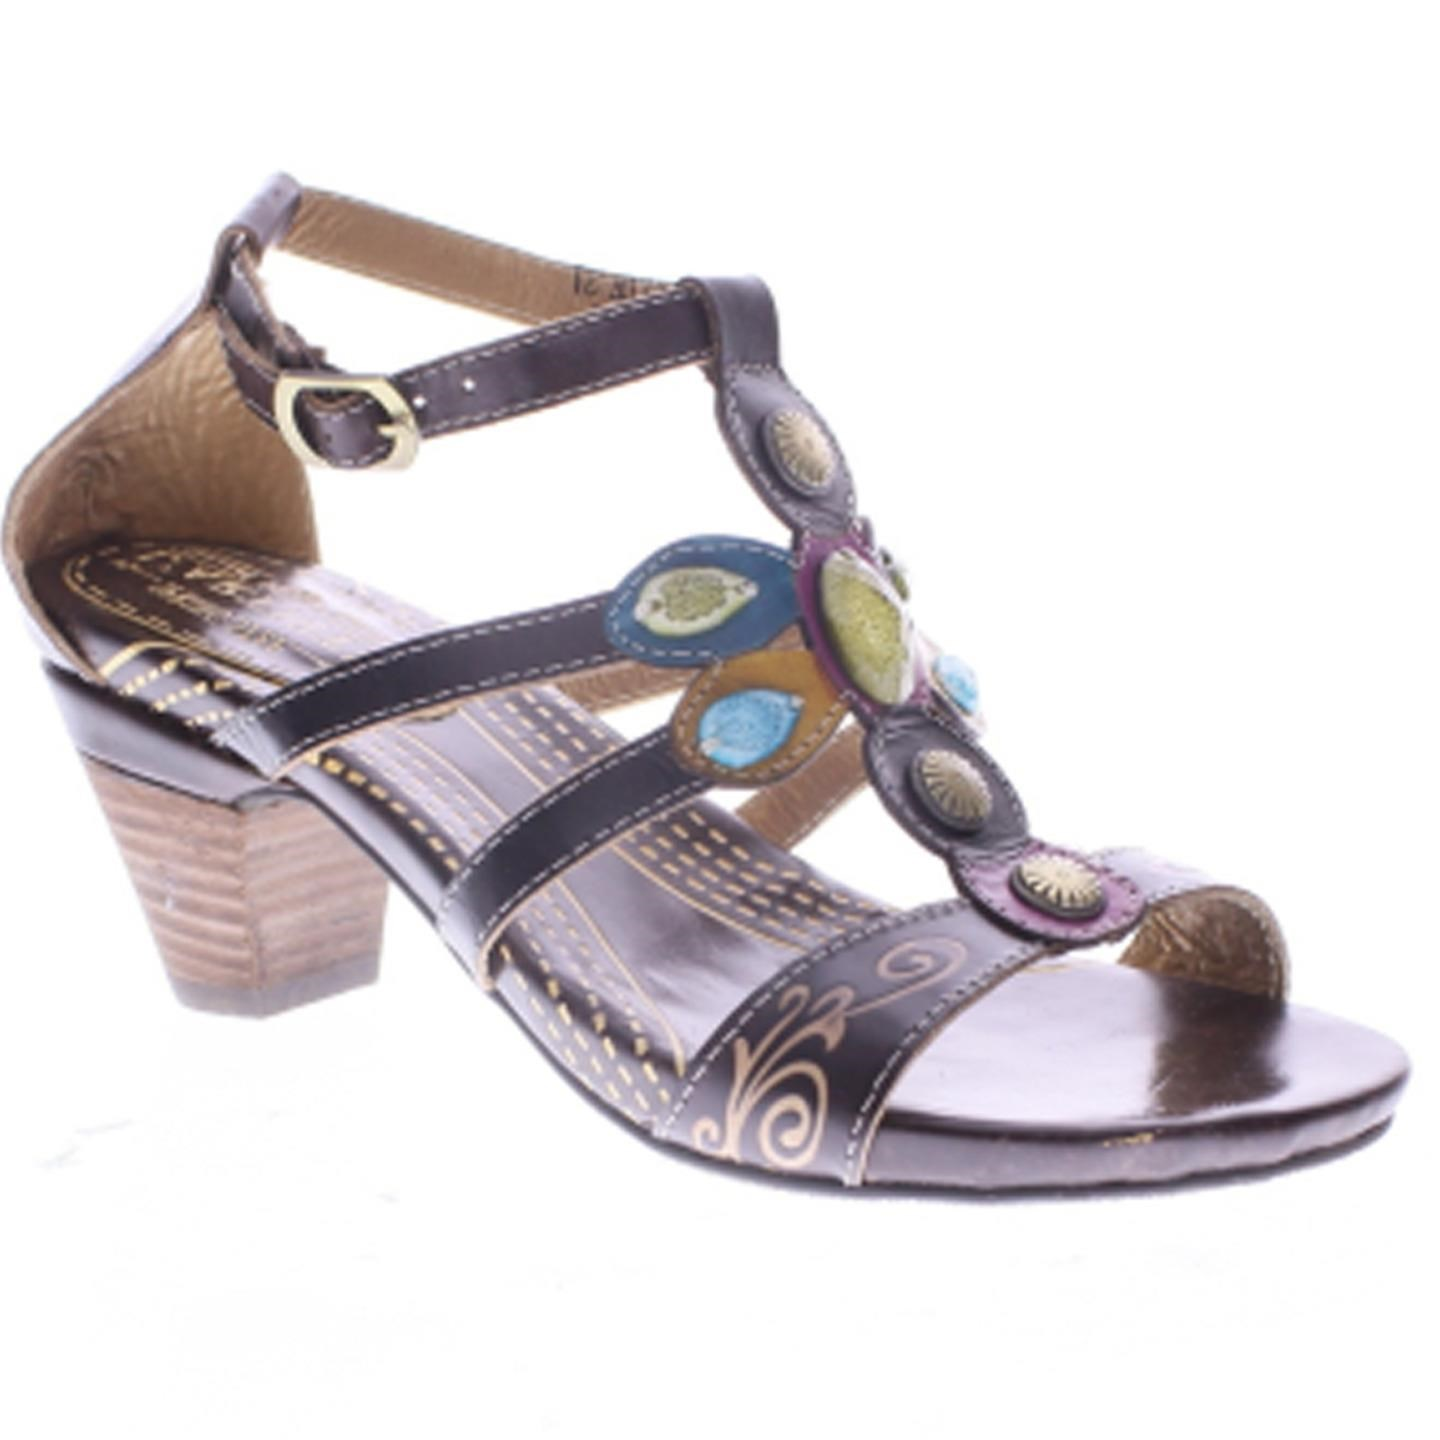 L'Artiste Frenzie By Spring Step Brown Leather Sandal 35 EU   5 US Women by Spring Step